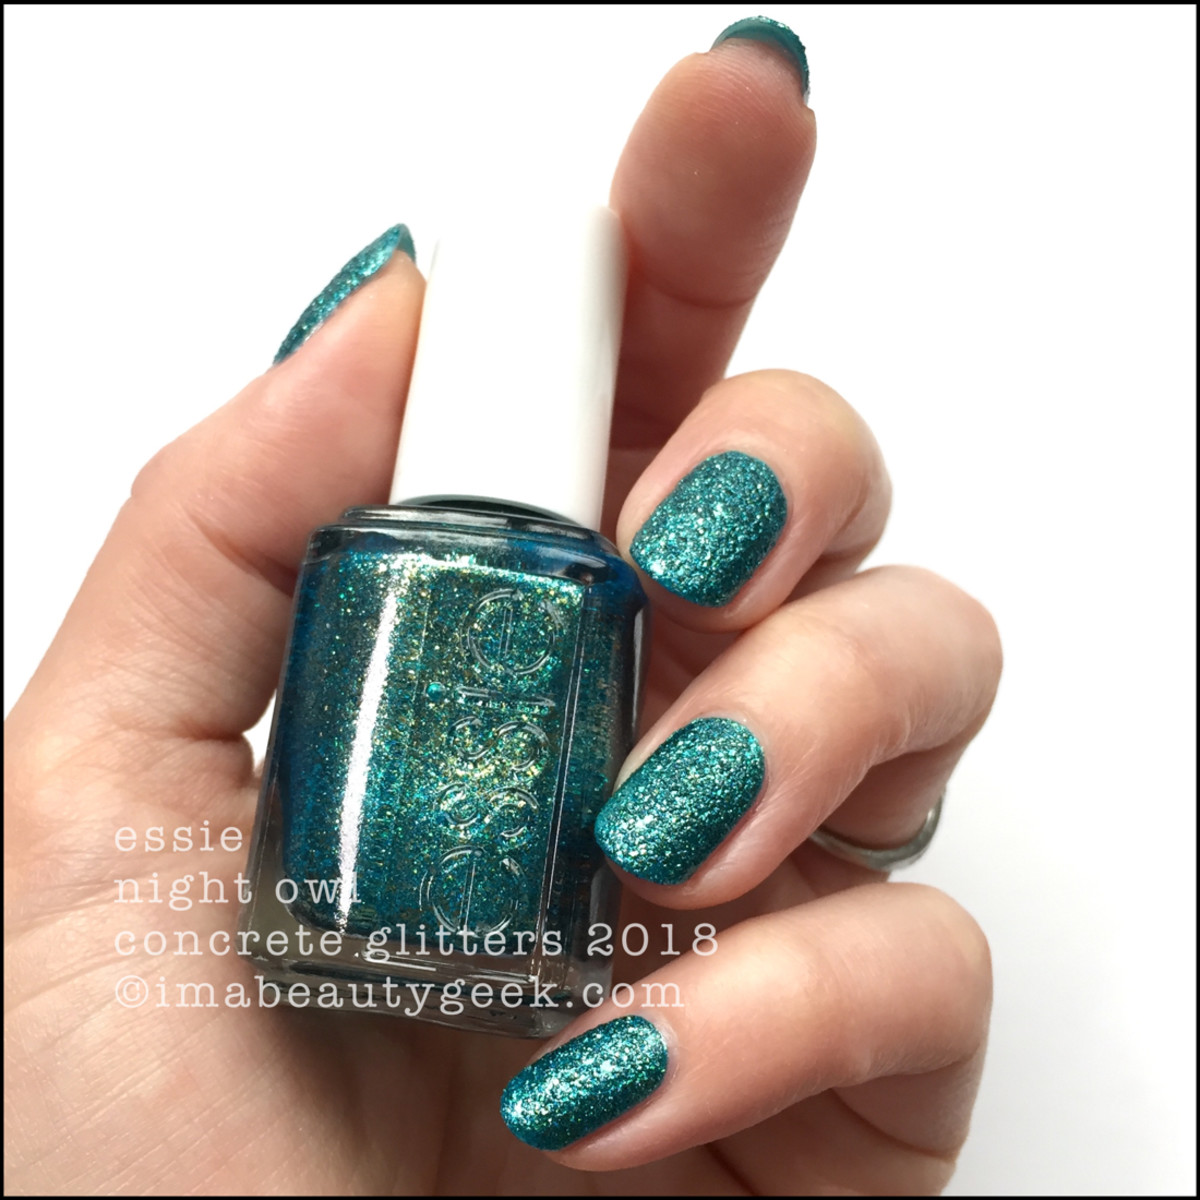 Essie Night Owl - Essie Concrete Glitters 2018 Swatches